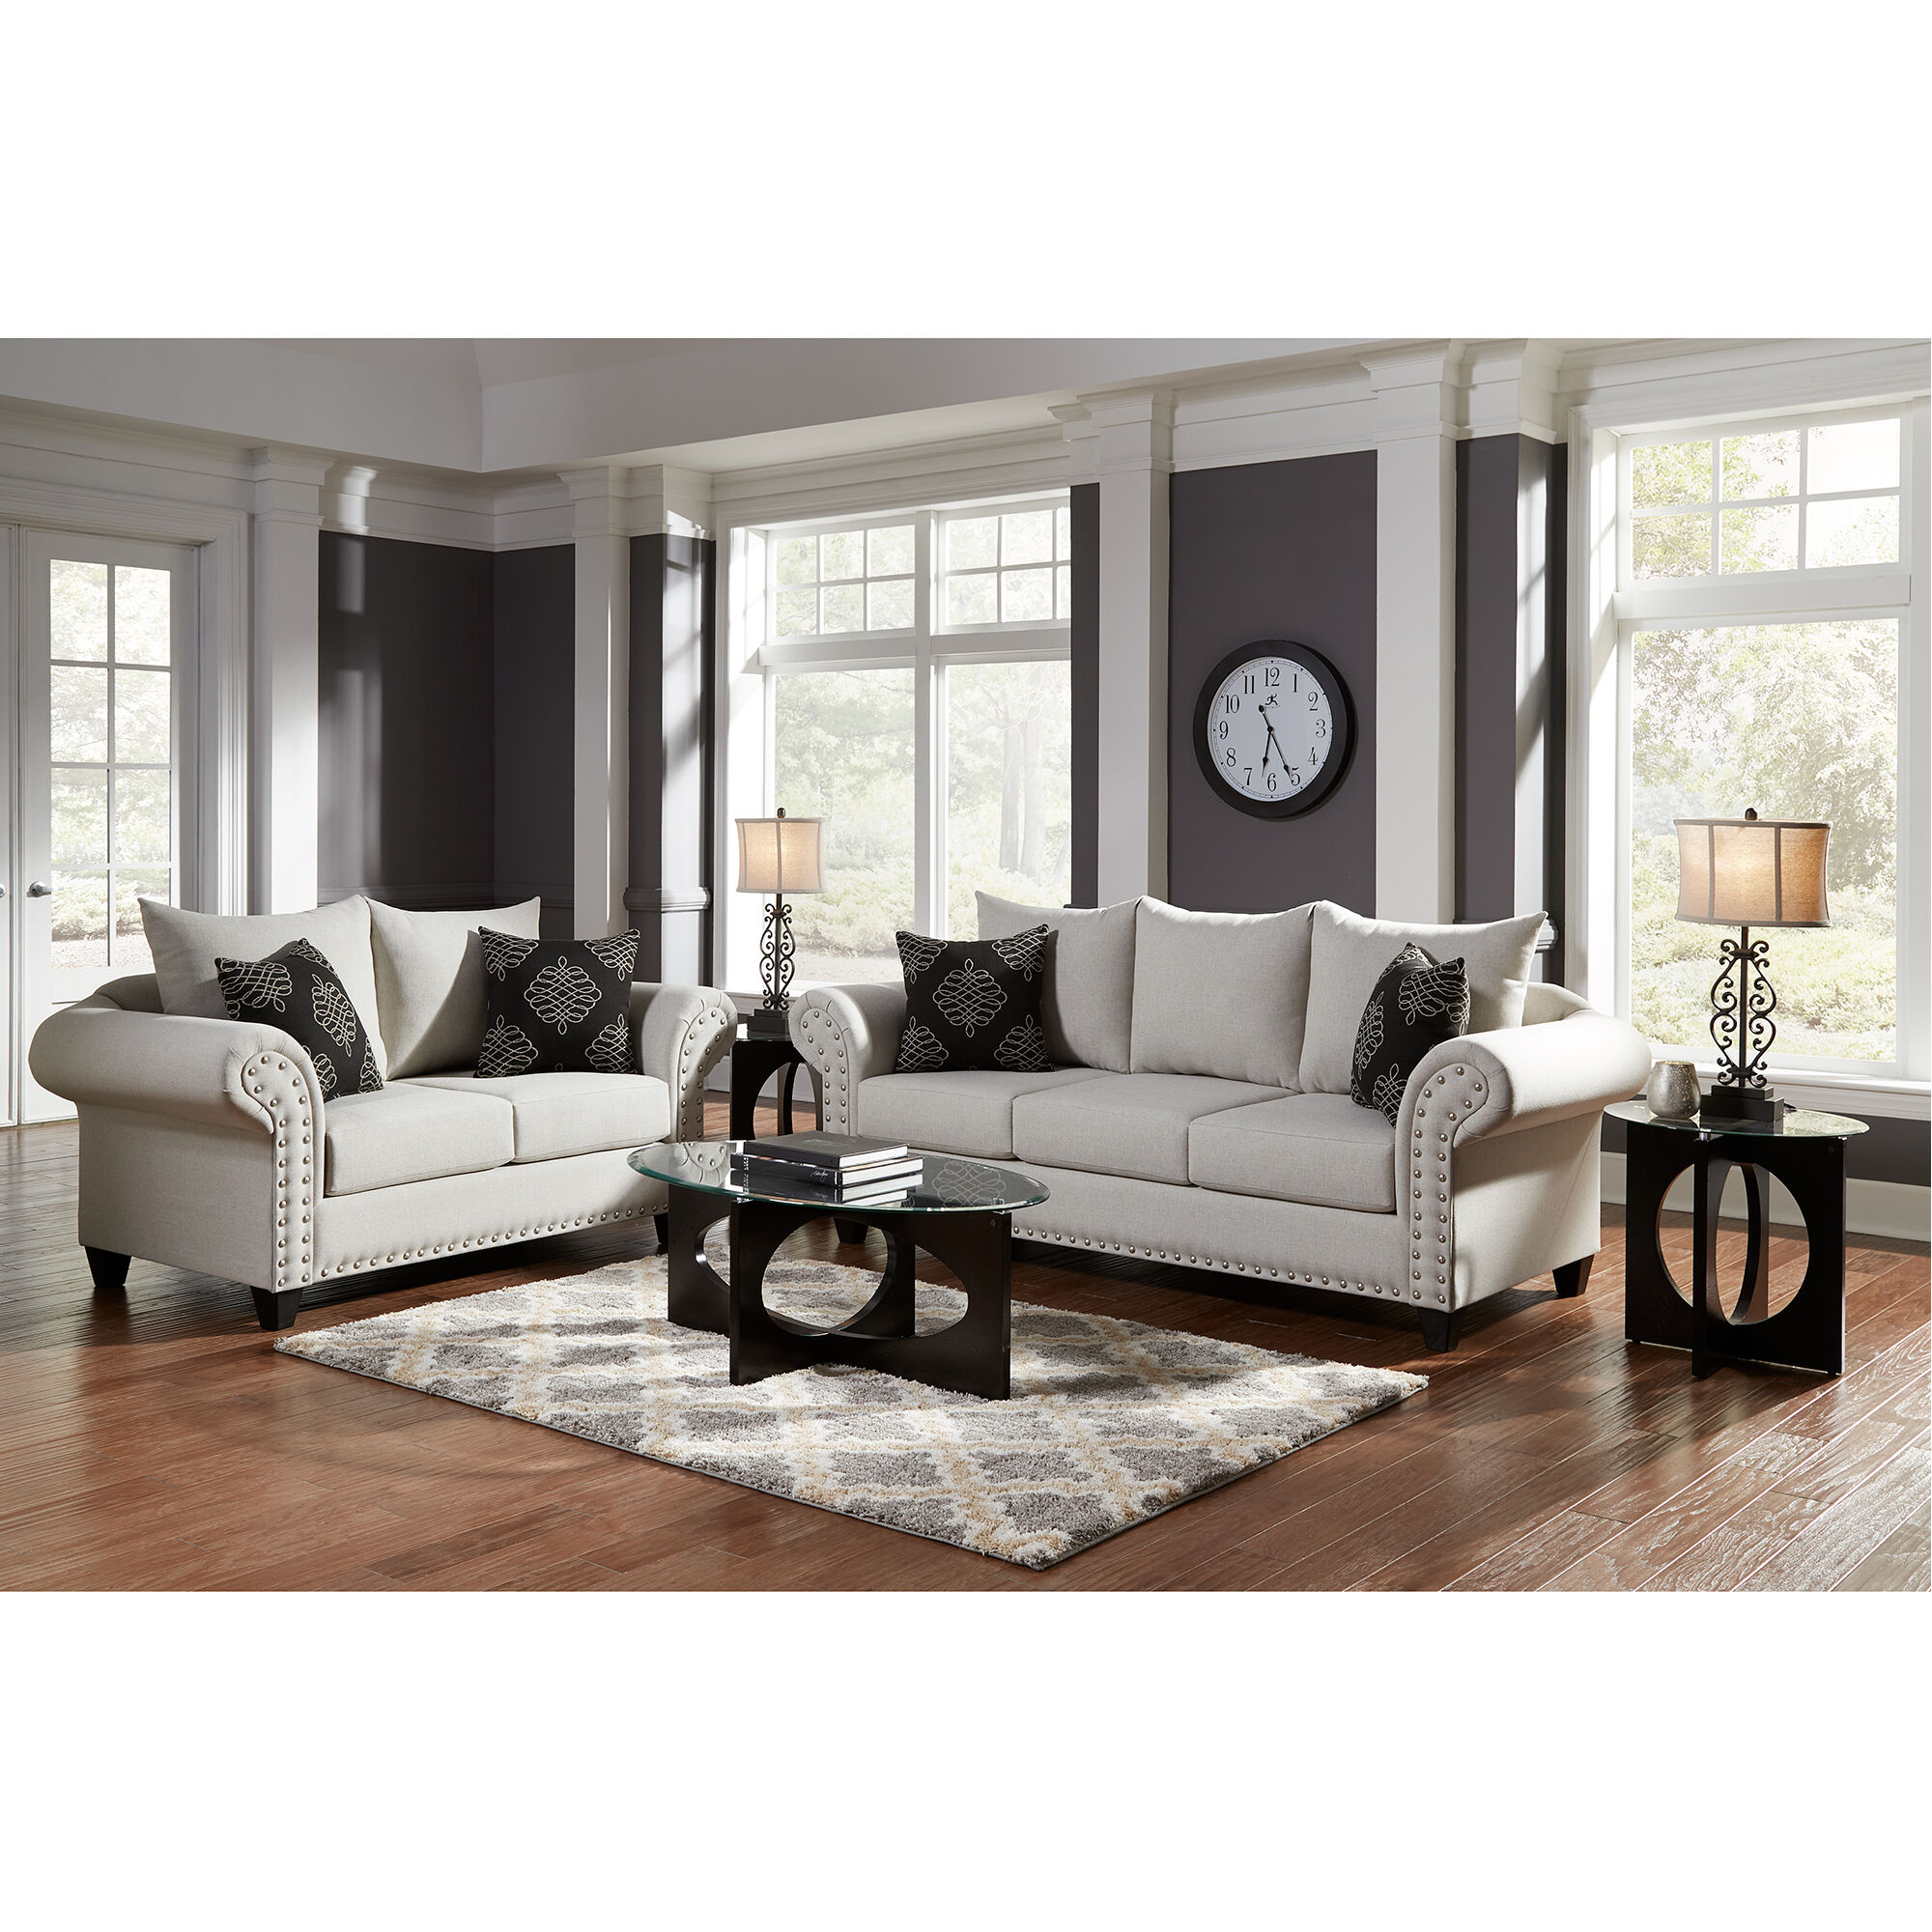 Gentil 8 Piece Beverly Living Room Collection